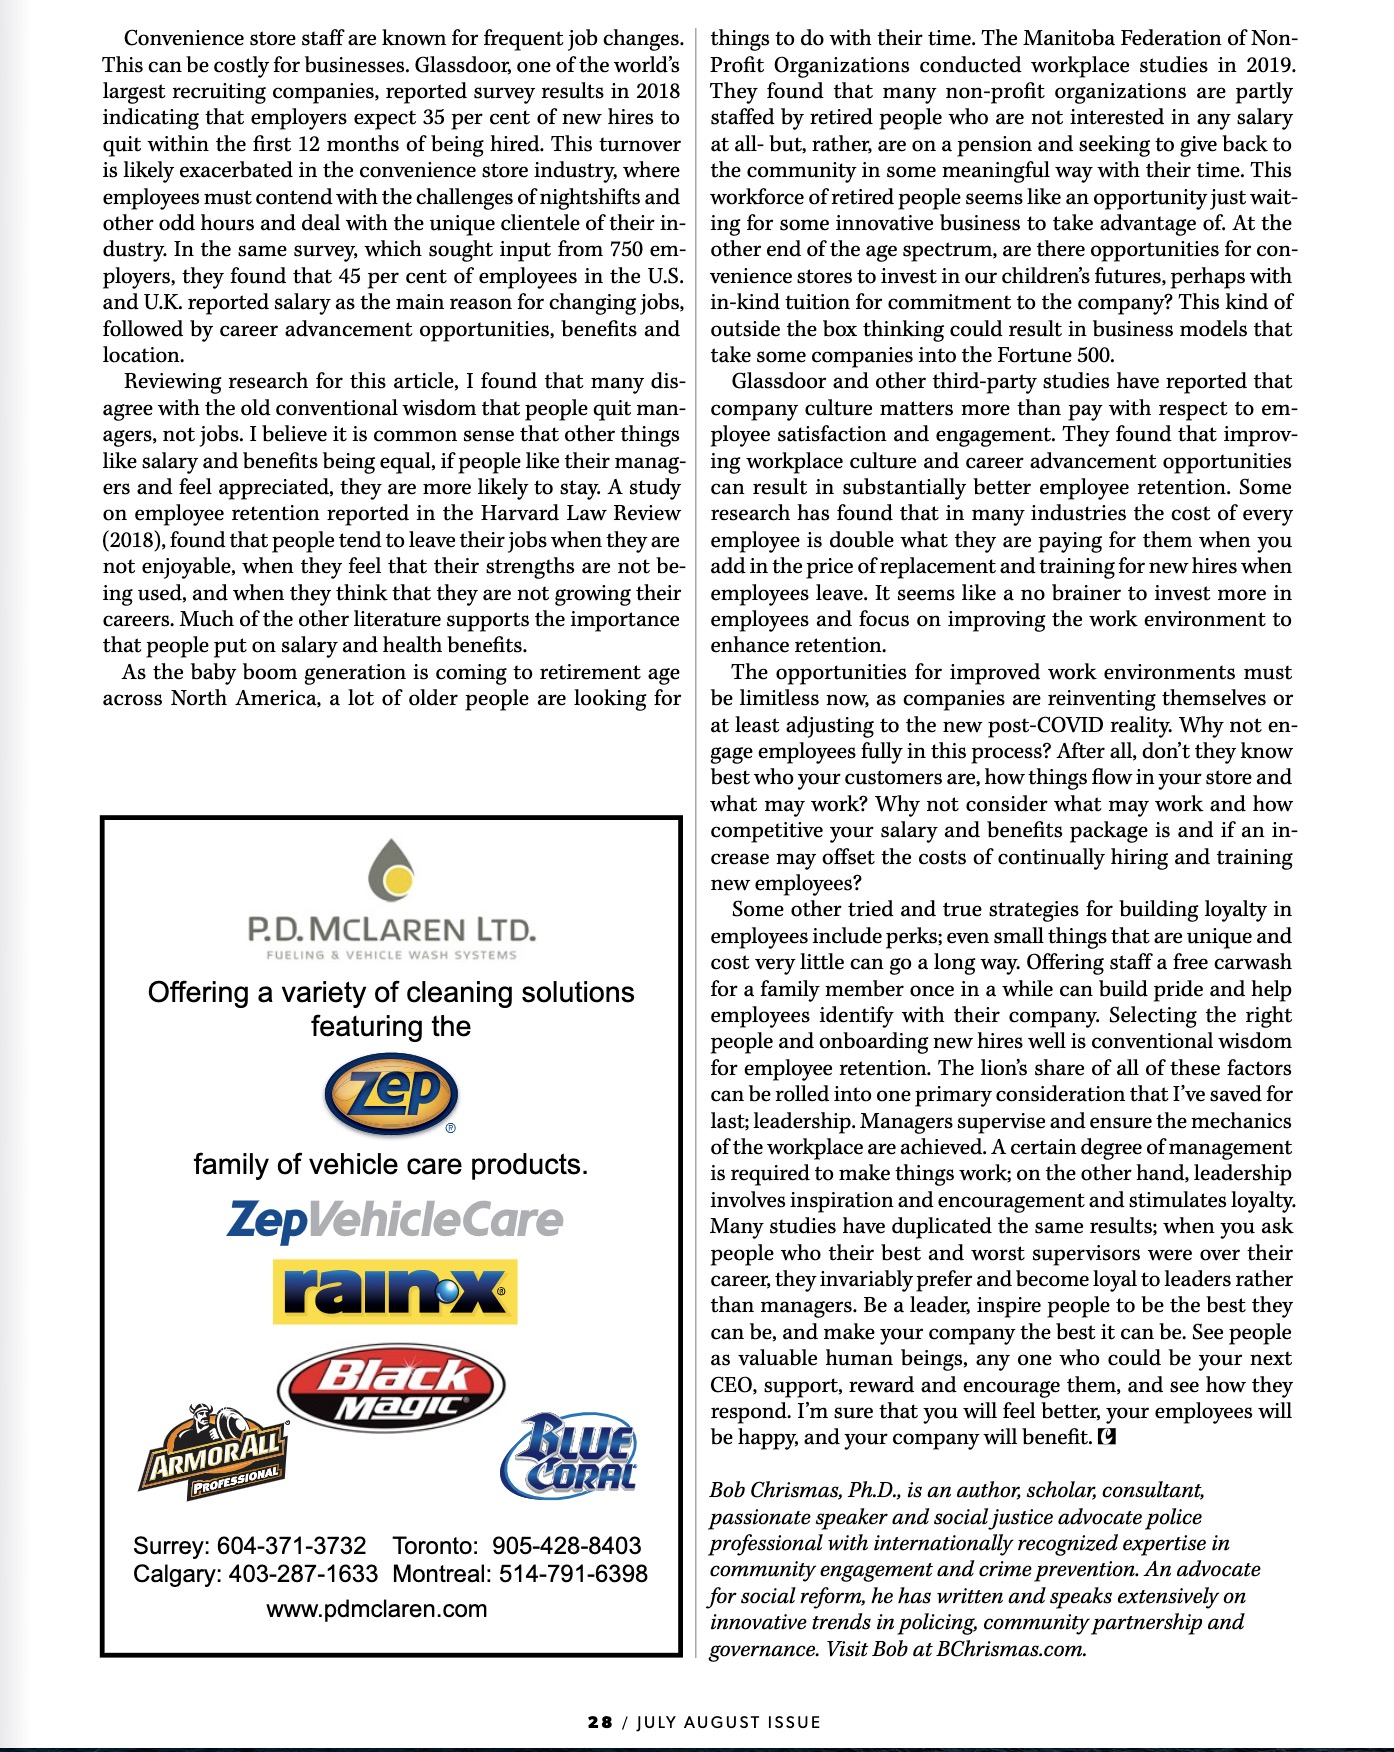 2020-07-26 pg 1 Convenience & Carwash Canada Employee retention copy